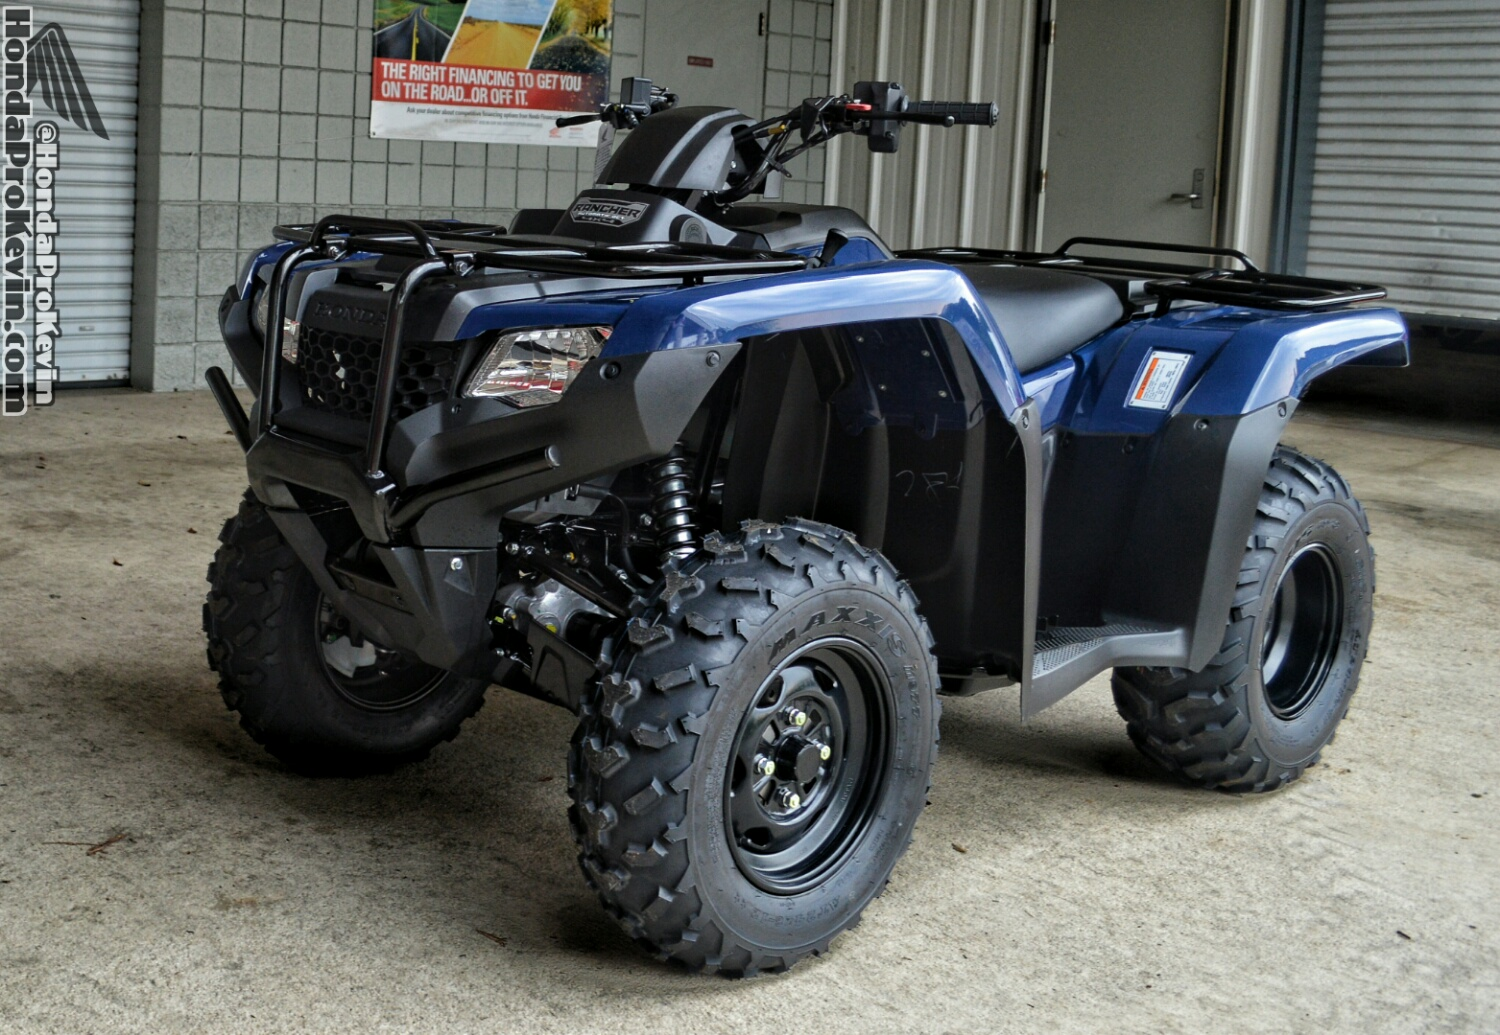 2017 Honda Atv Models Lineup Review Rancher 420 Foreman ...